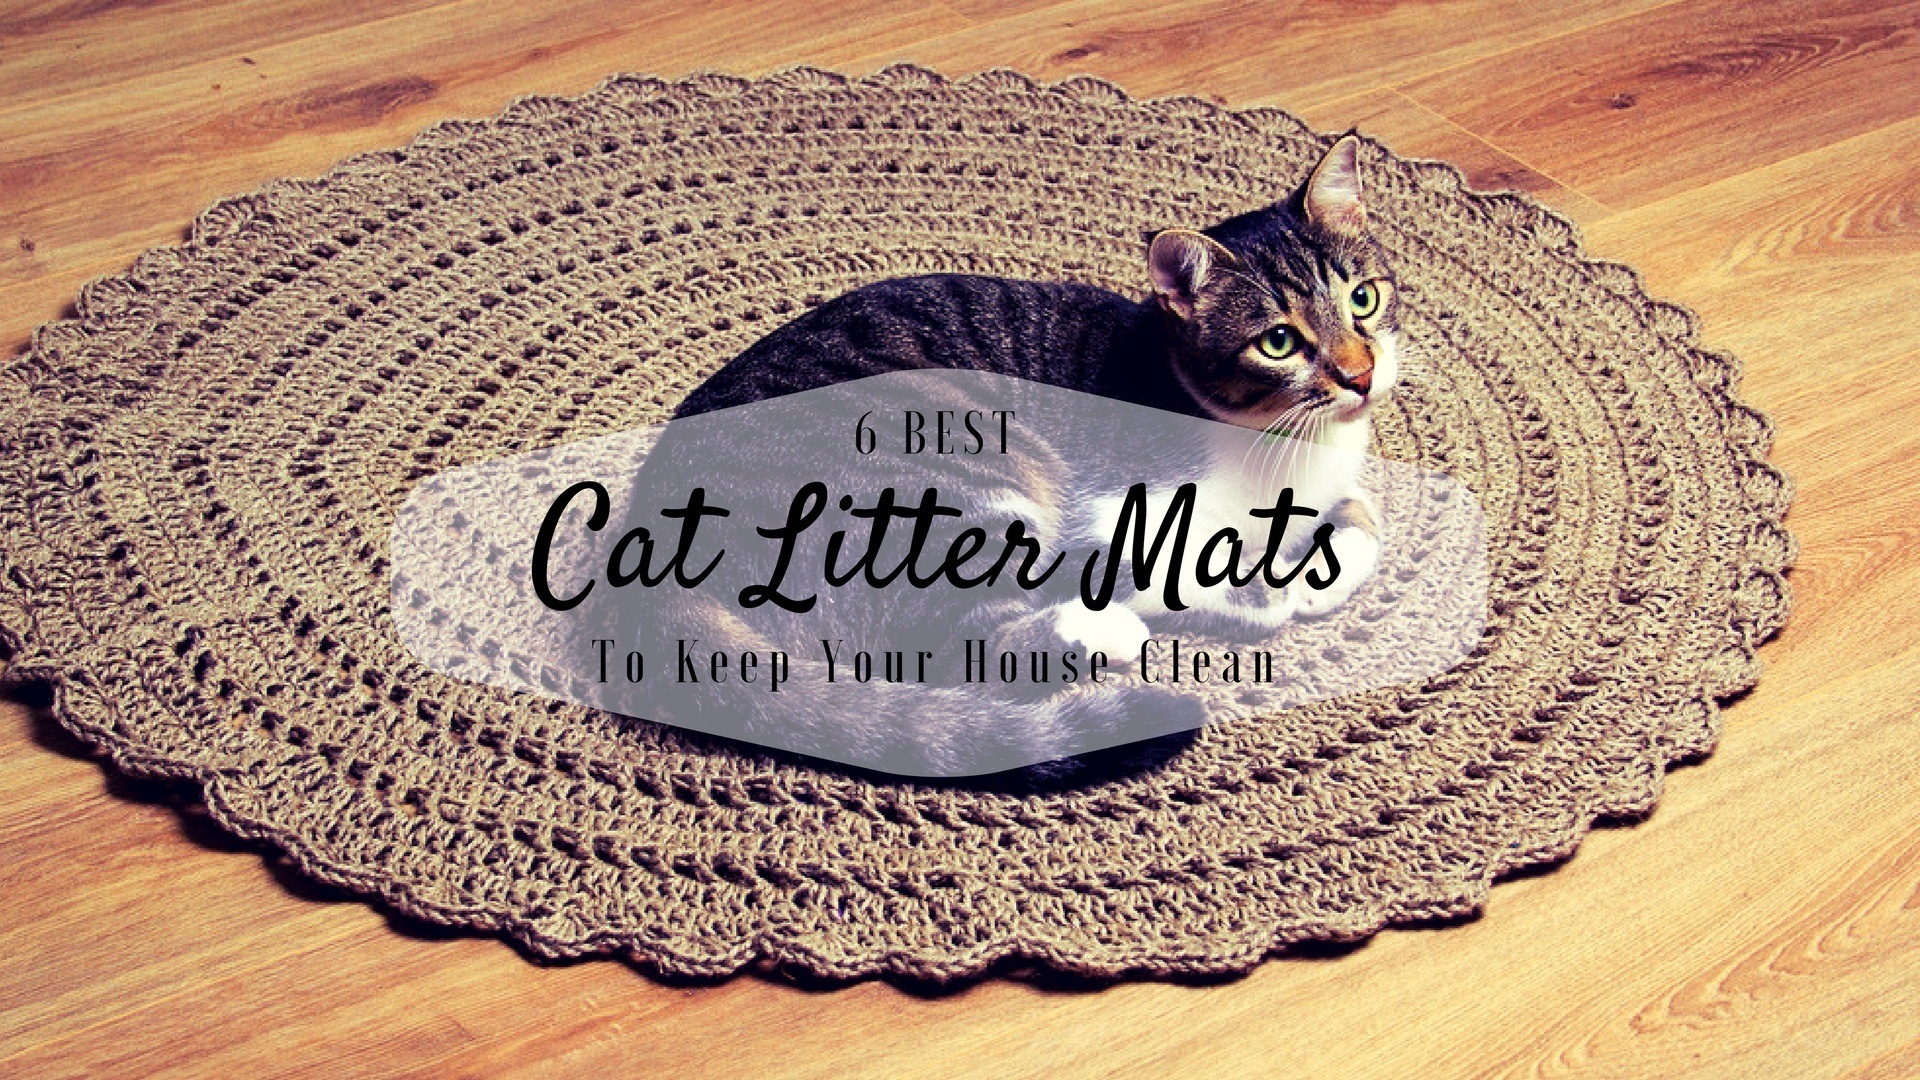 urine scatter cat kitty is mats pet free mat quality extra best premium tm paws litter smiling reviews large convenience the control catcher with a bpa